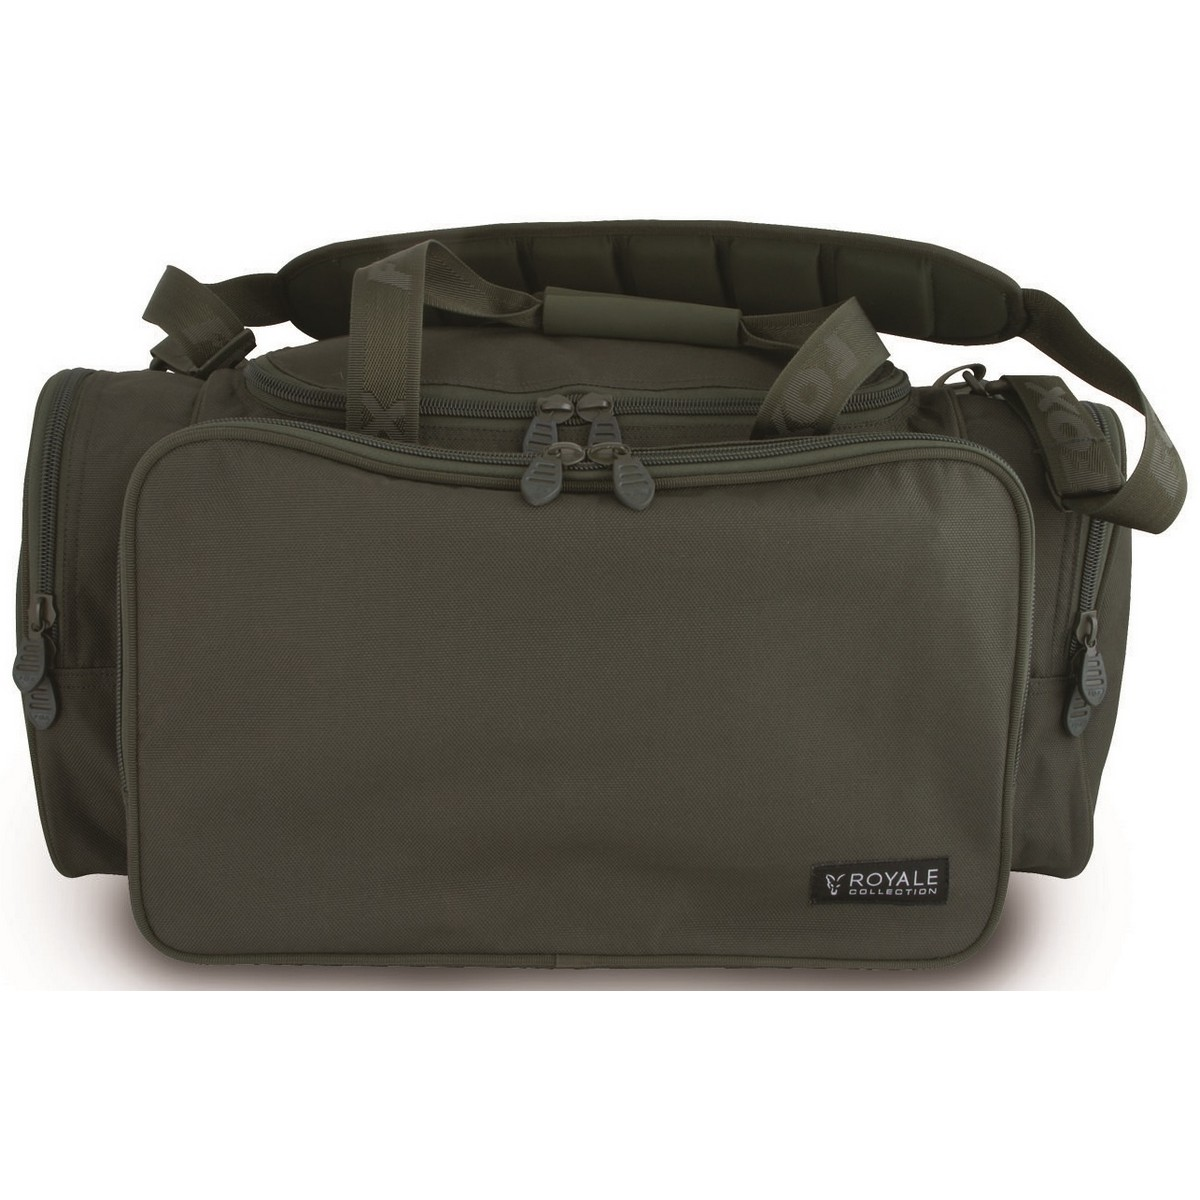 Сак рибарски FOX Royale Carryall Large